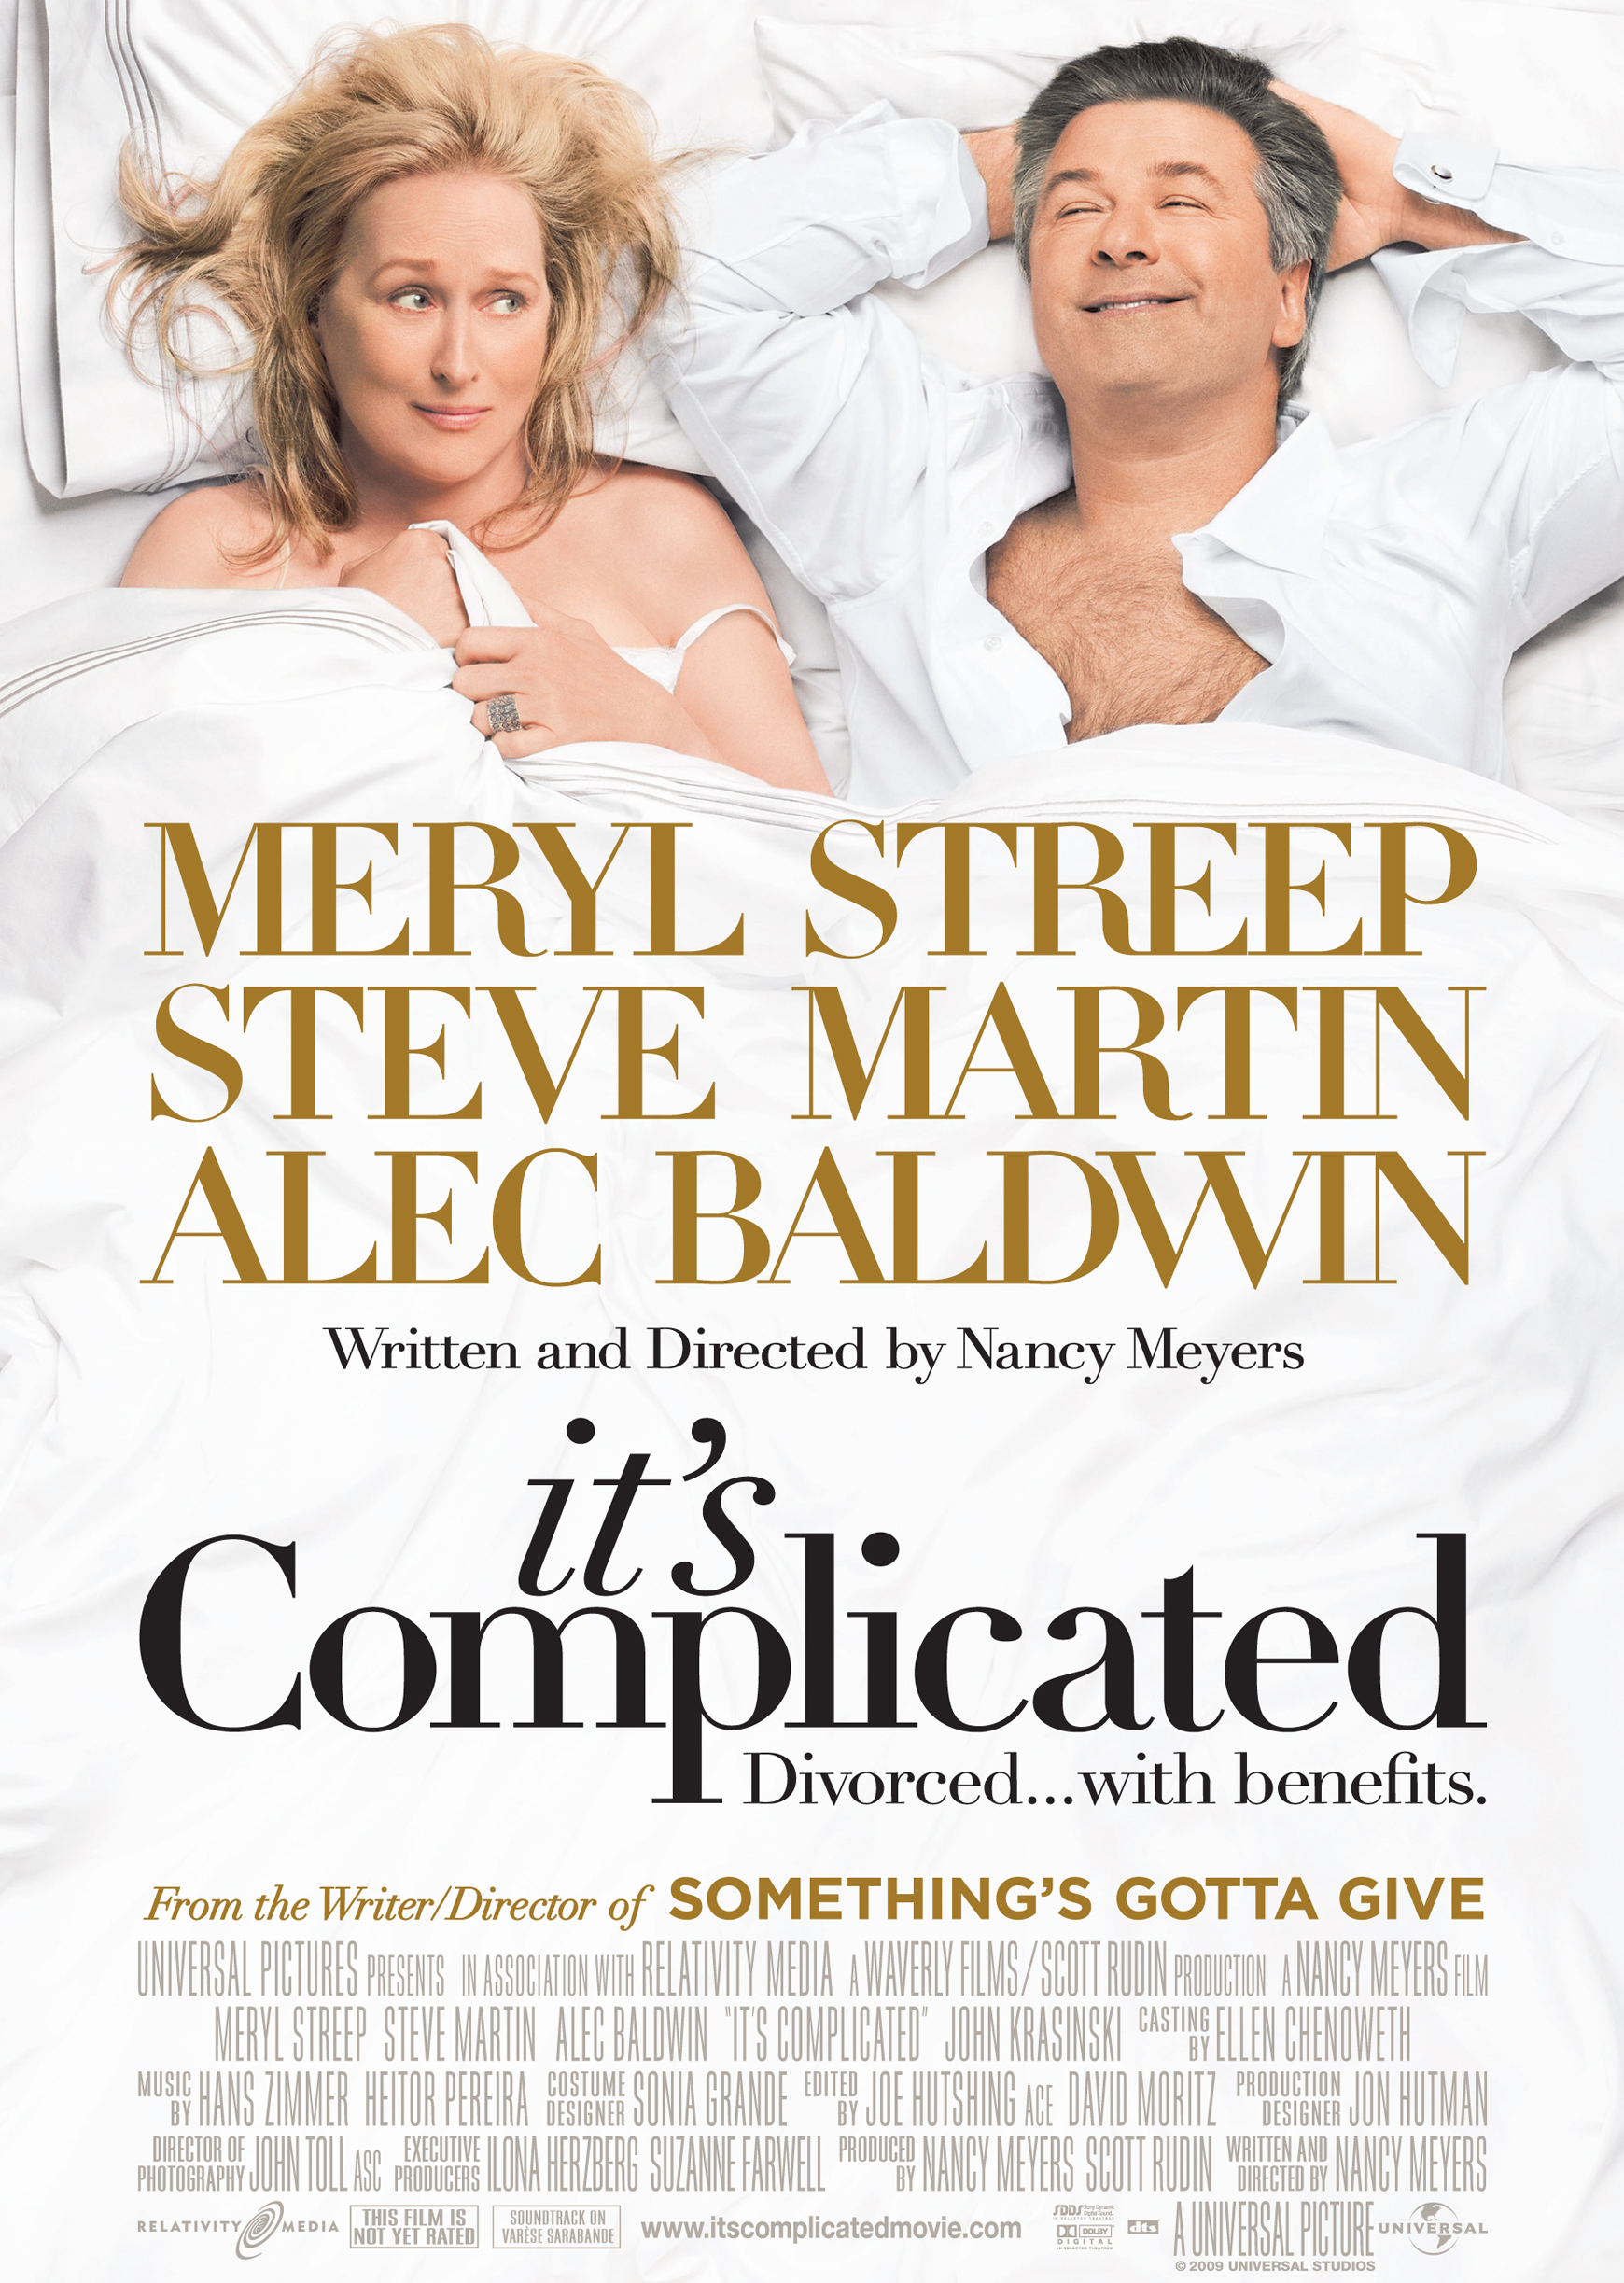 its-complicated-poster-art-alec-baldwin-maryl-streep.jpg